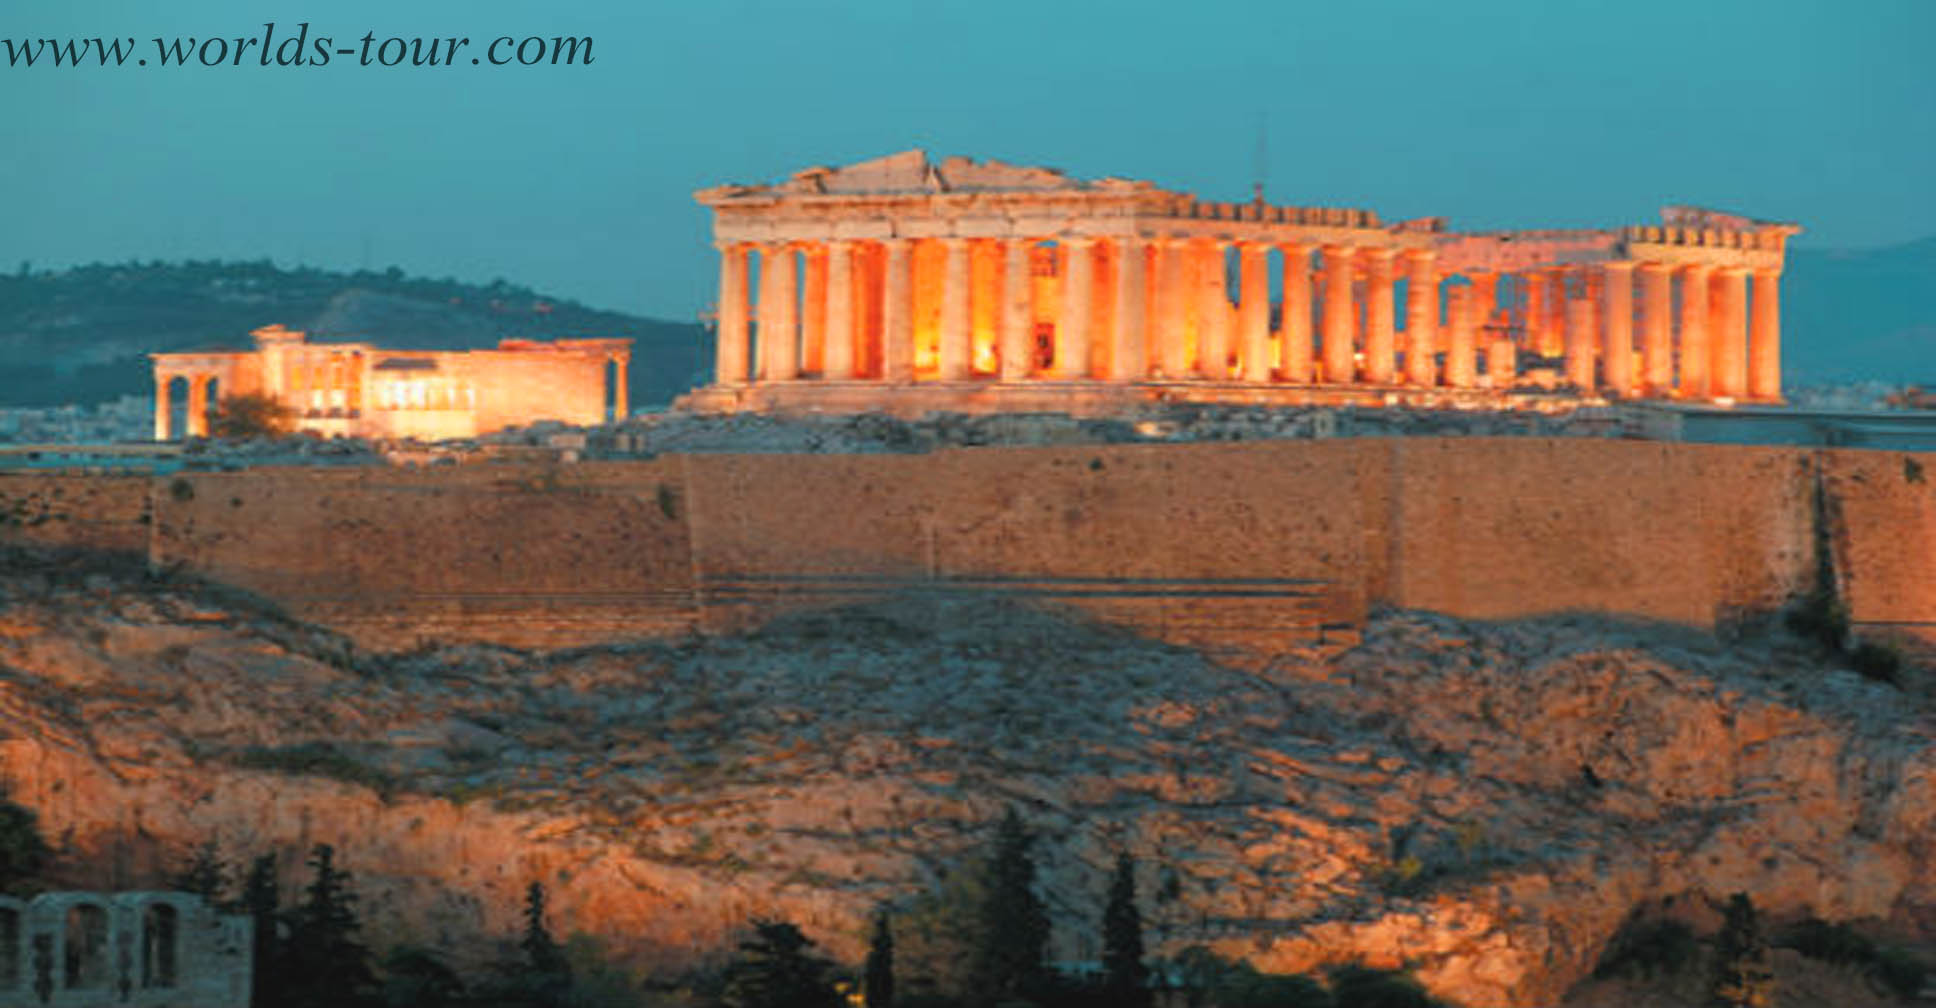 acropolis athens tickets;acropolis facts;when was the acropolis built;acropolis and Parthenon;acropolis nutanix;acropolis meaning;acropolis pizza;acropolis map;acropolis museum;worlds tour;world top tourist place ;world tour;tour and travel;best tour of acropolis;top archeological site ;incient town